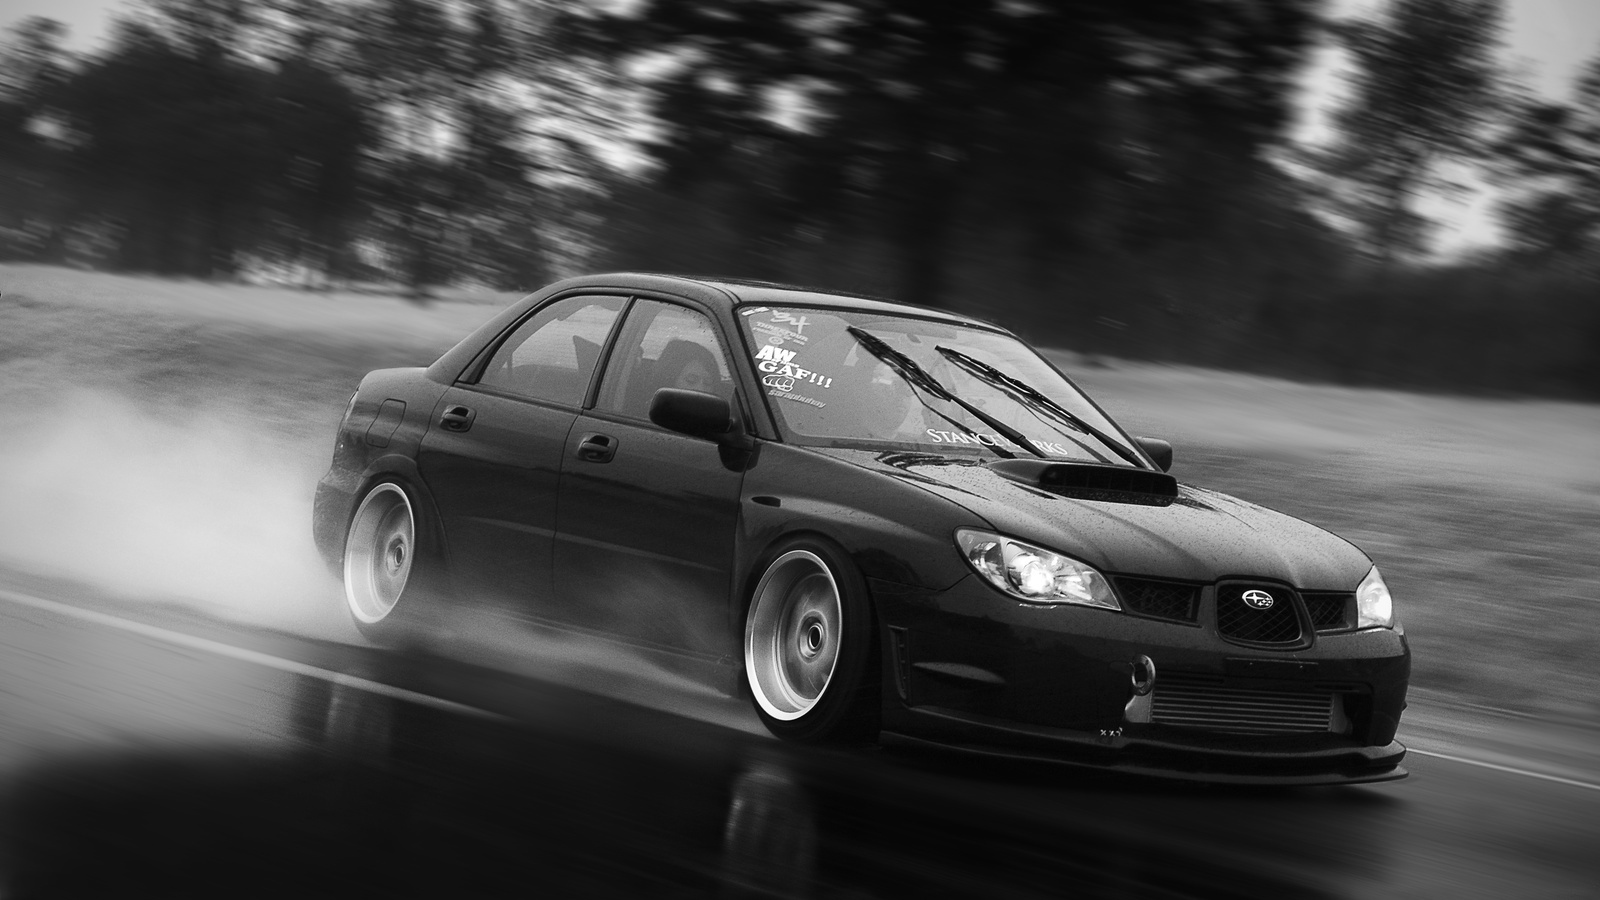 16828 download wallpaper Transport, Auto, Roads, Subaru screensavers and pictures for free